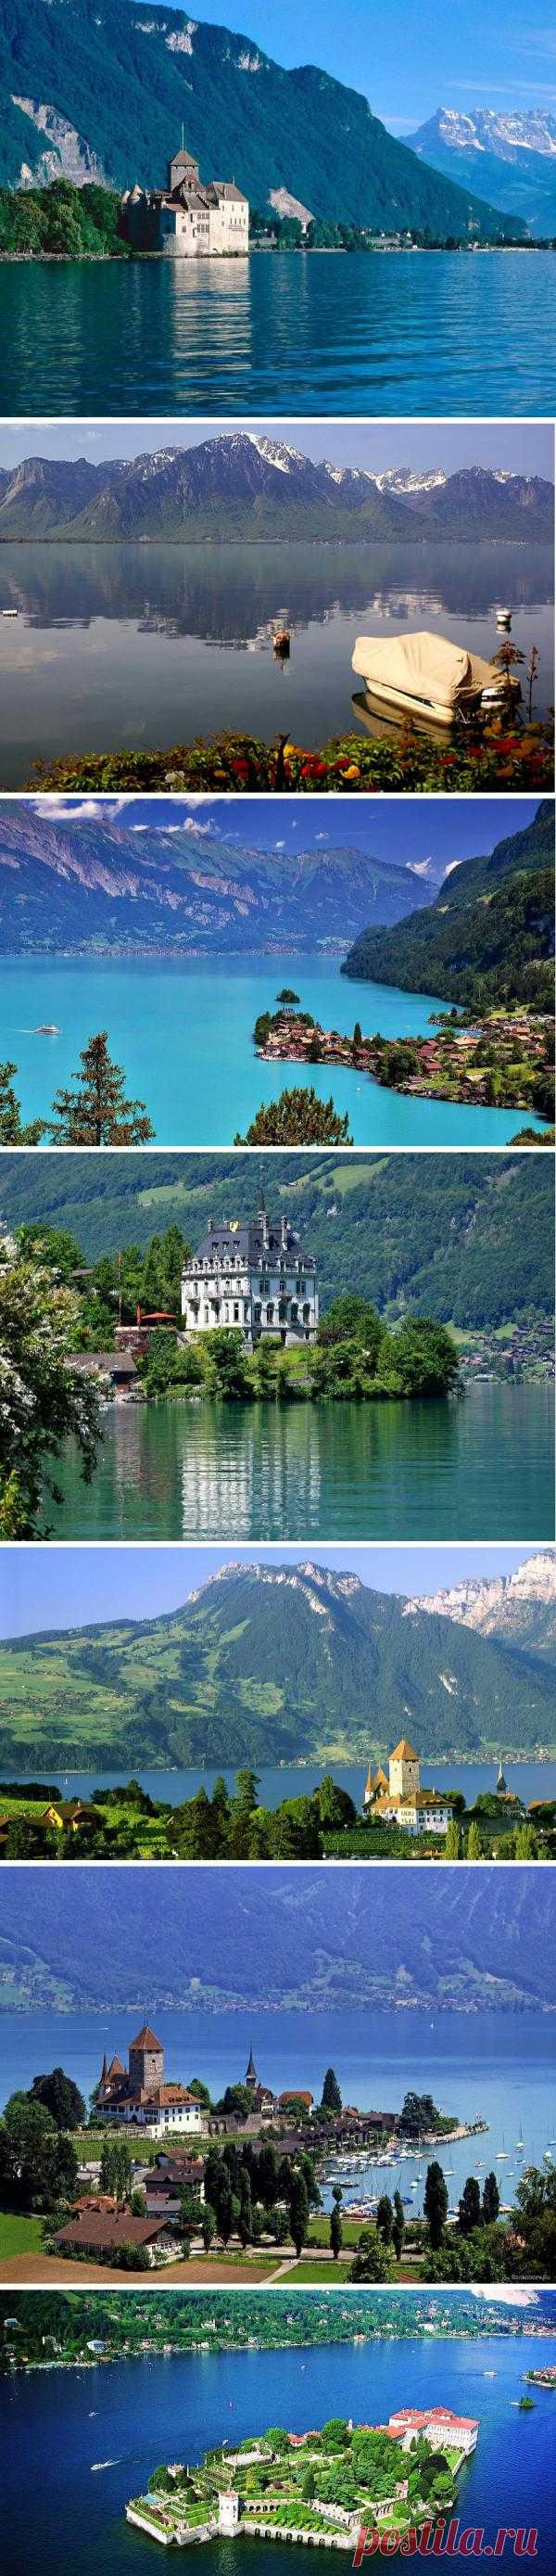 Switzerland - the country of lakes on which rest was always considered not only useful, but also very prestigious. In Switzerland there are about 200 lakes and each of them is a wonderful corner, fantastic creation of the nature which visit is remembered for a long time